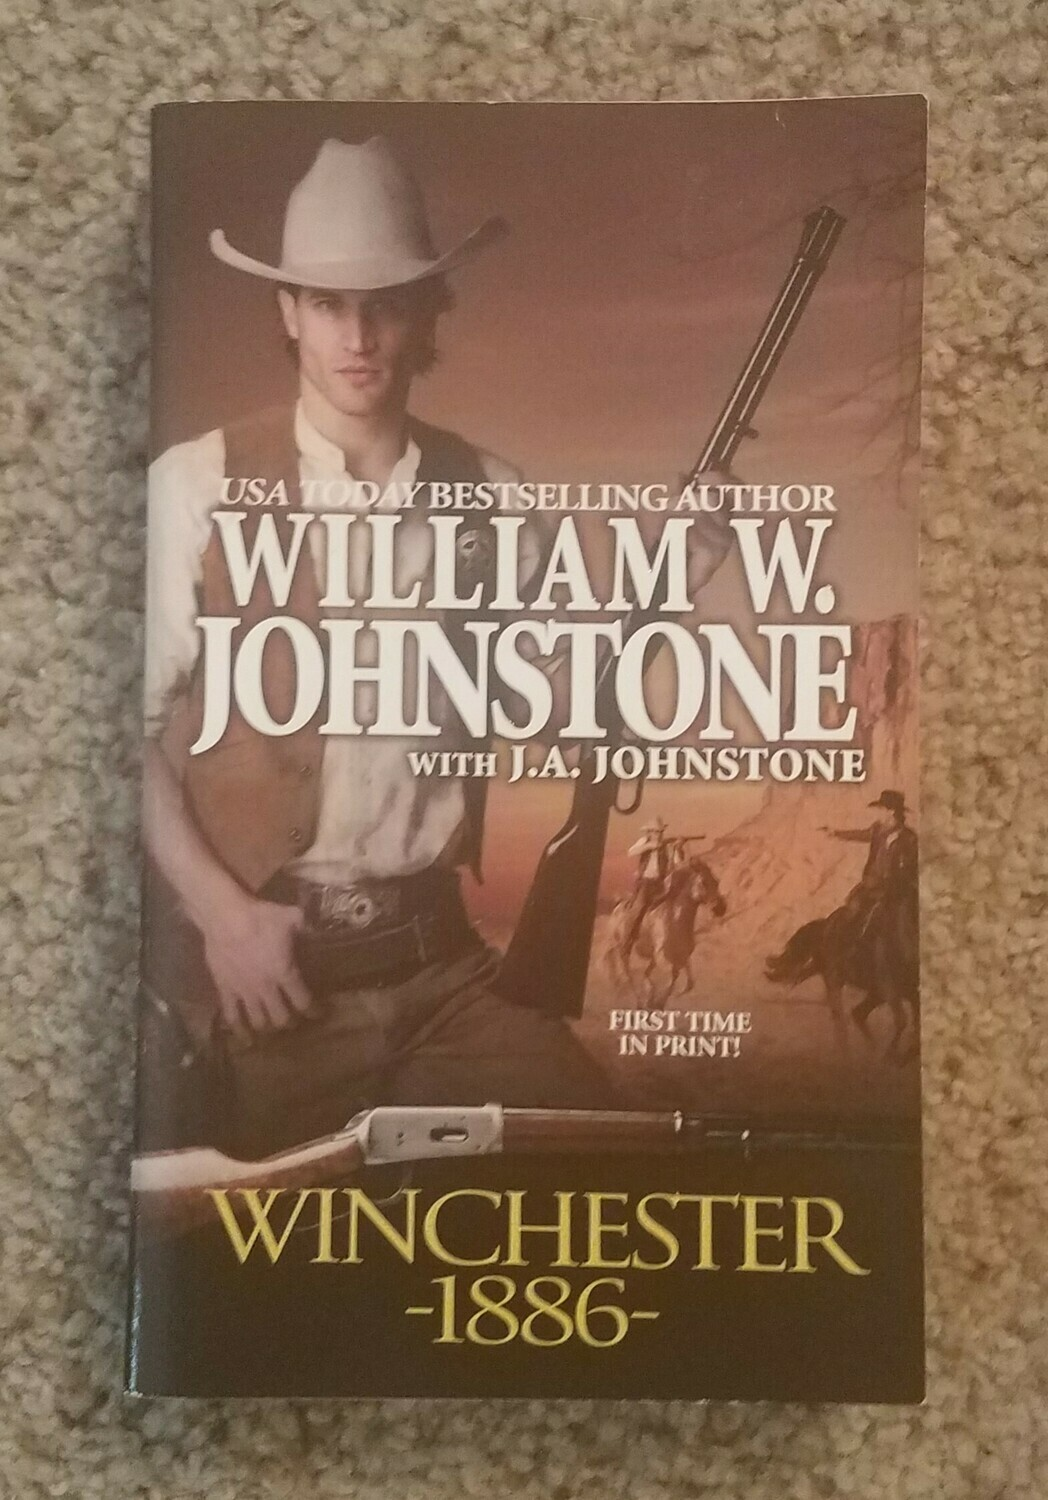 Winchester -1886- by William W. Johnstone with J.A. Johnstone